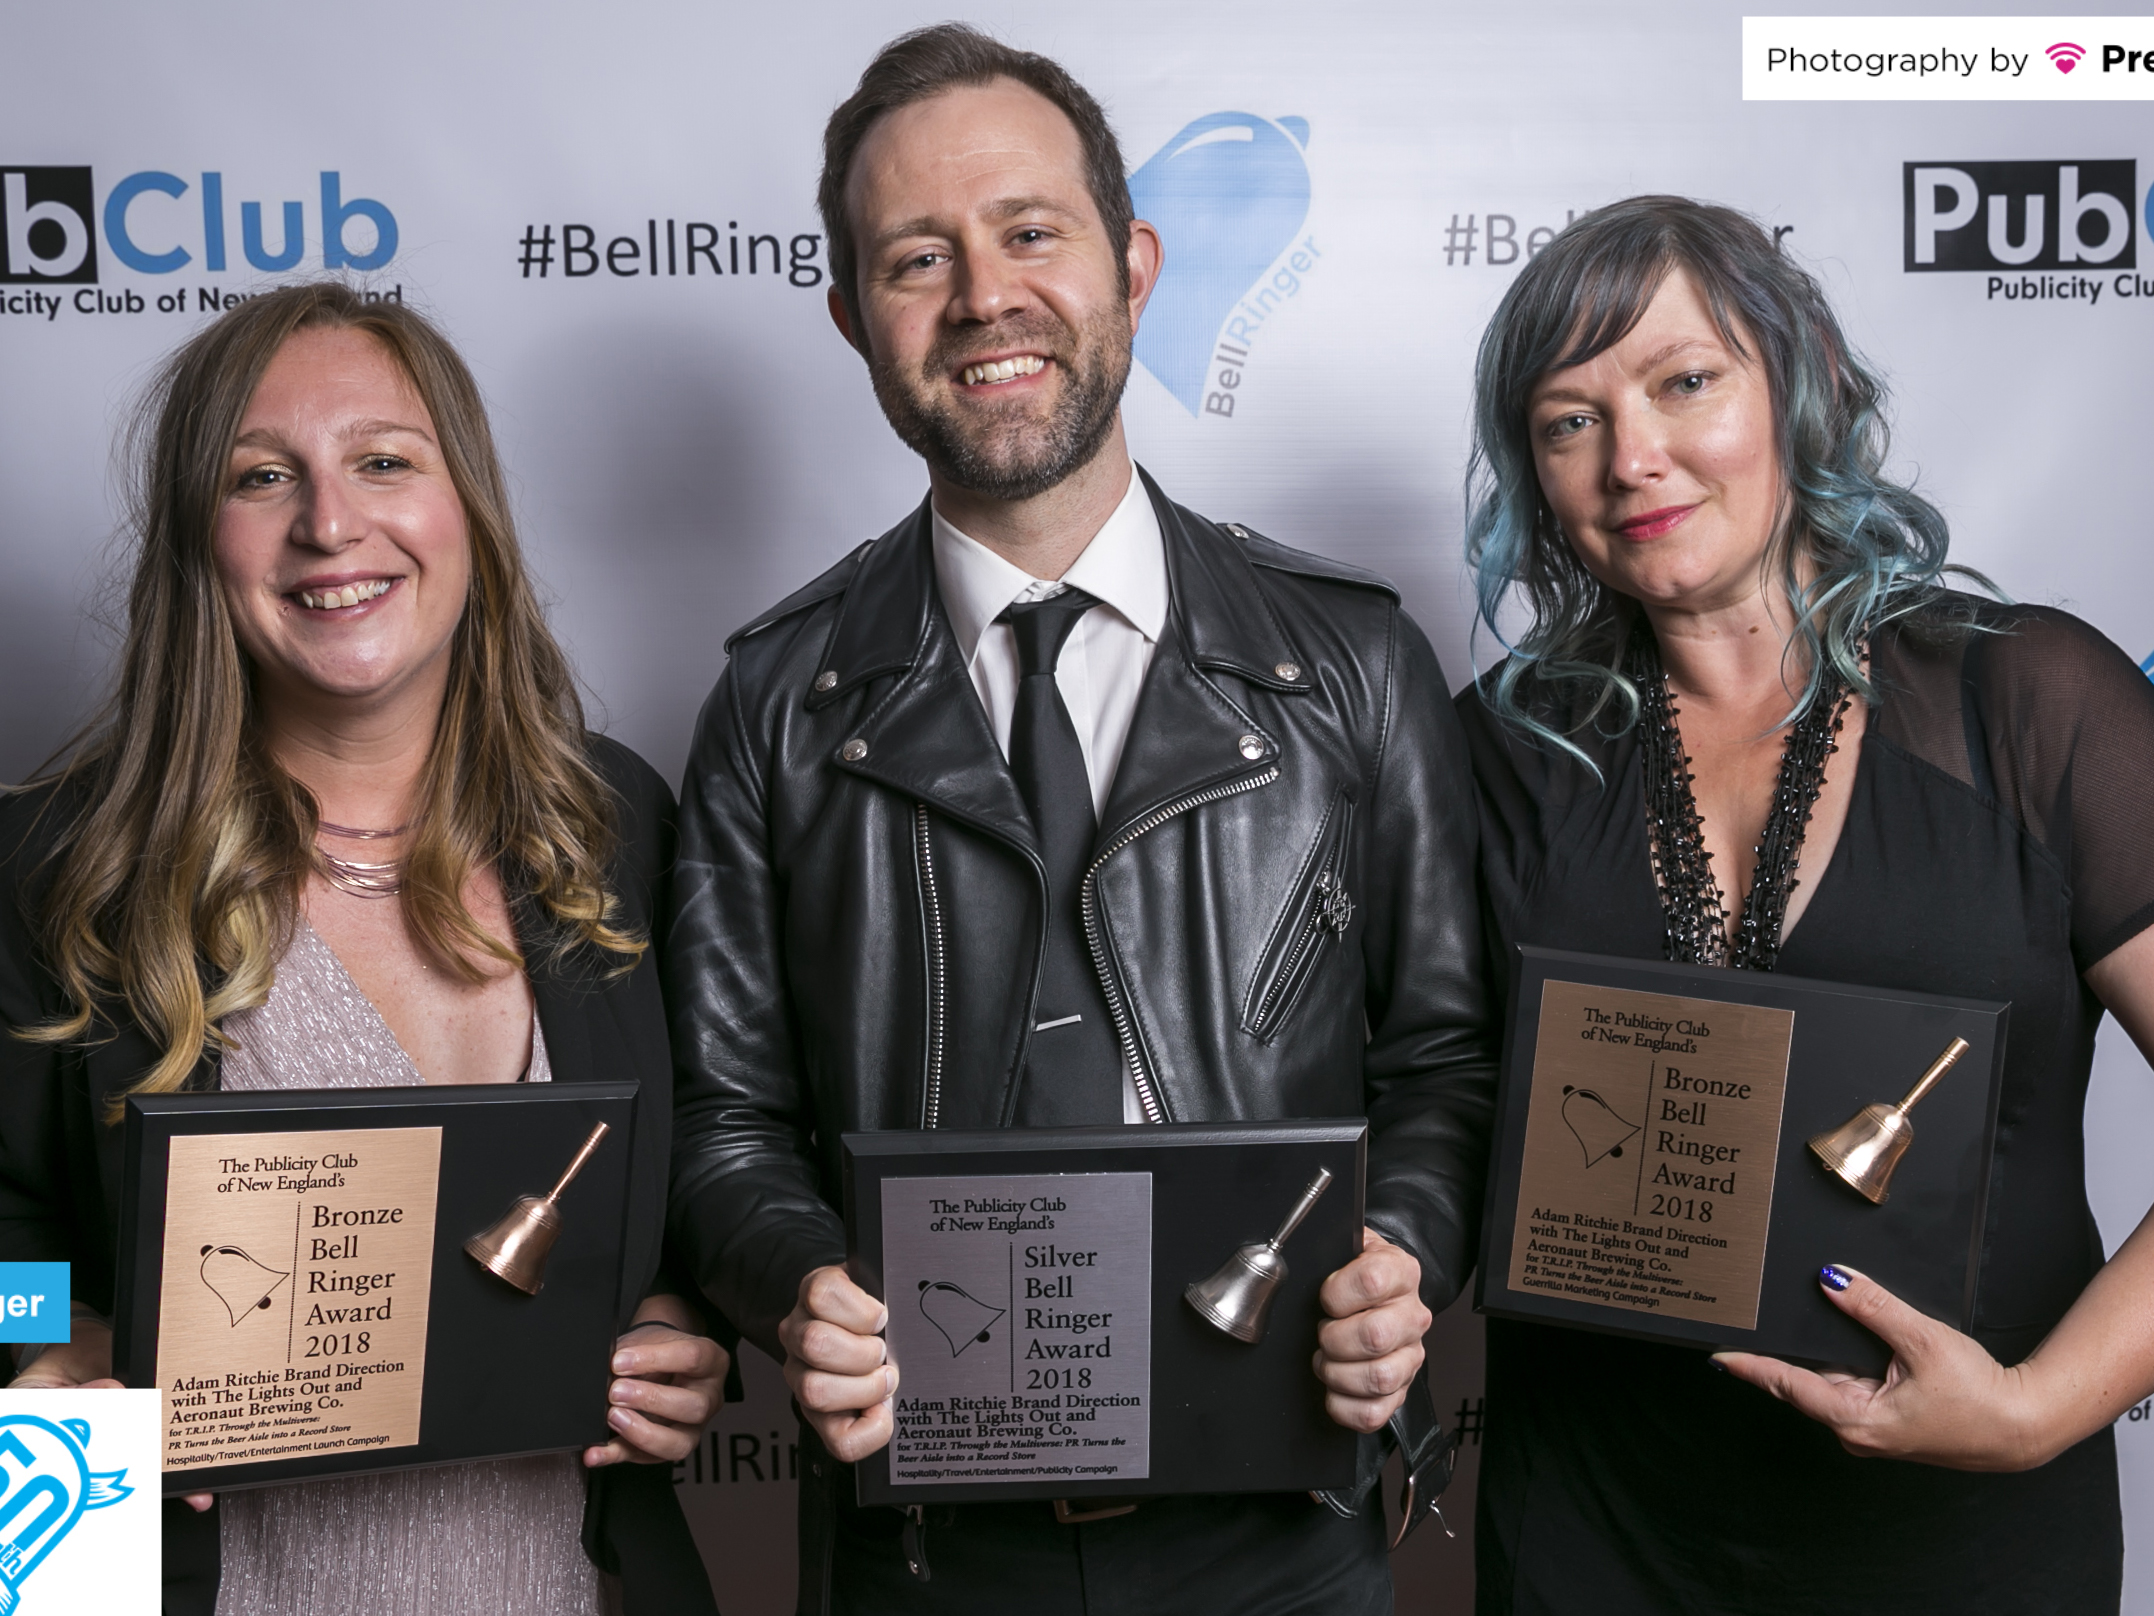 2018.06.13_Publicity Club of New England 50th Annual Bell Ringer Awards_11_Adam Leesa Abby_original, brightened by them_cropped.jpg